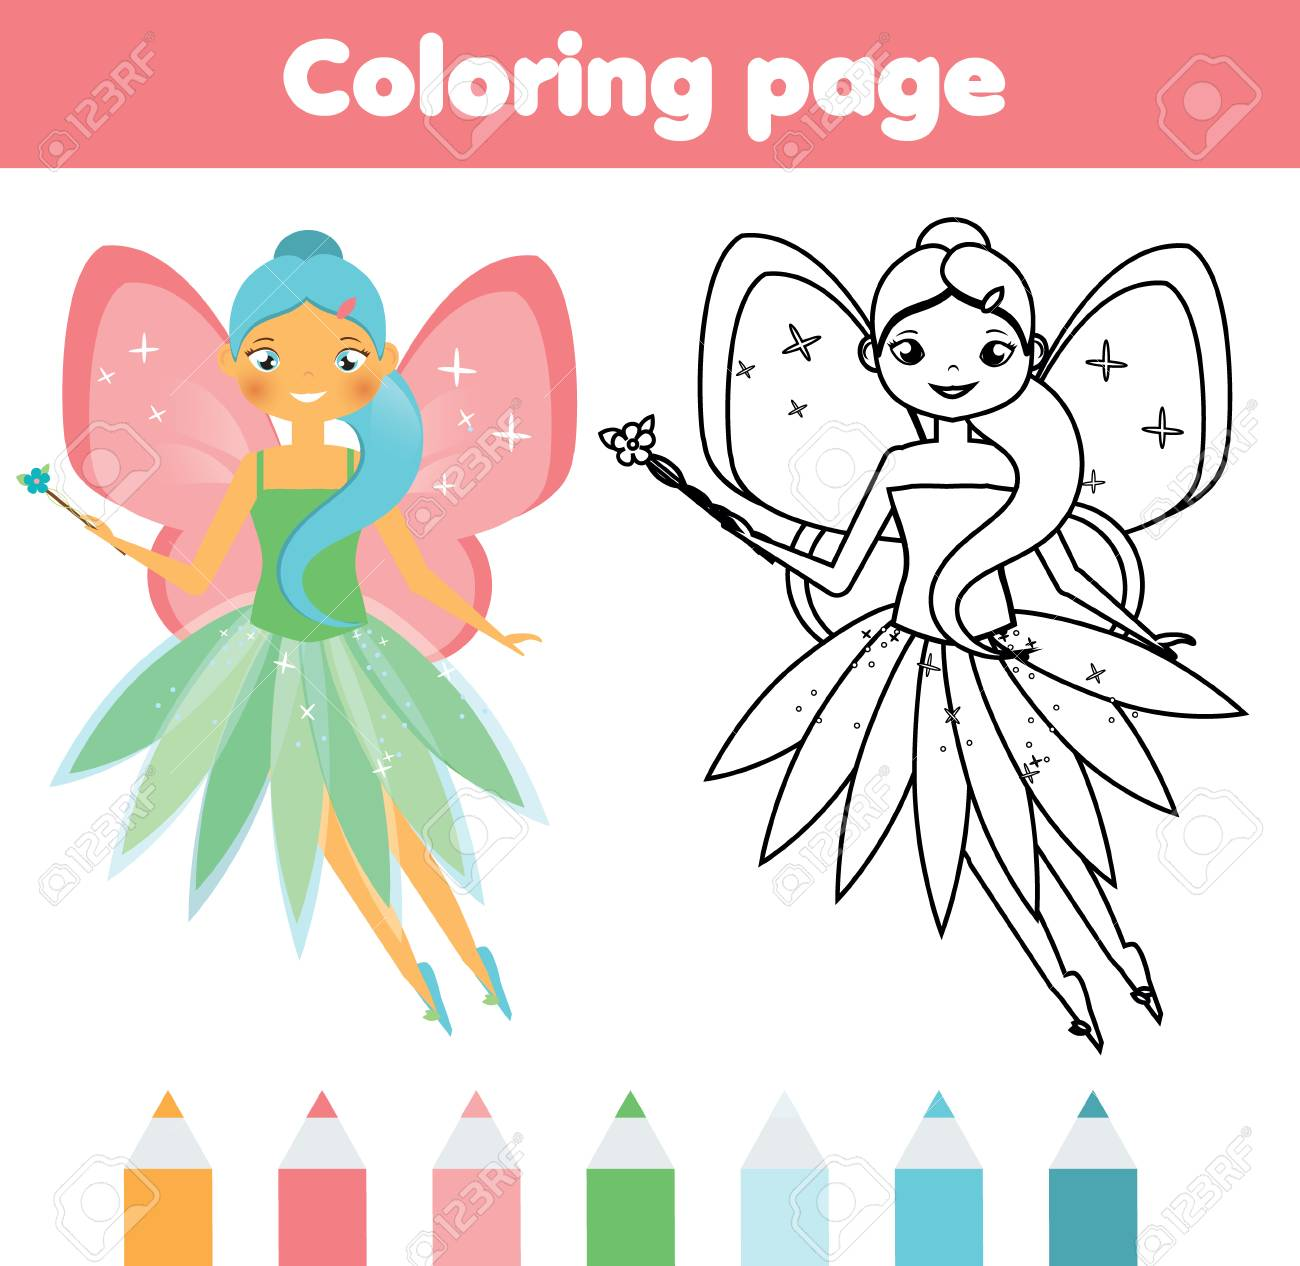 Coloring Page With Cute Flying Fairy Color The Picture Educational Royalty Free Cliparts Vectors And Stock Illustration Image 88074748